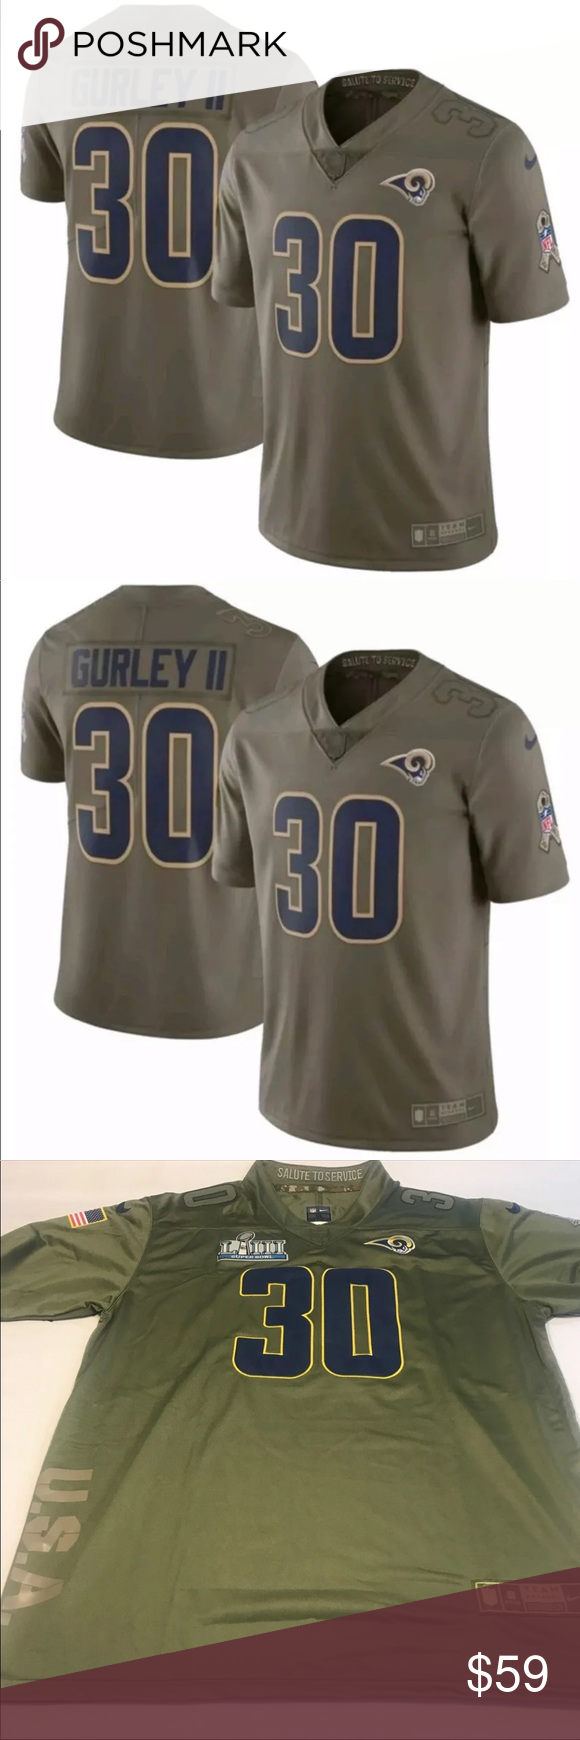 best service 54773 80b69 Todd Gurley Los Angeles Rams salute to service SB Brand new ...